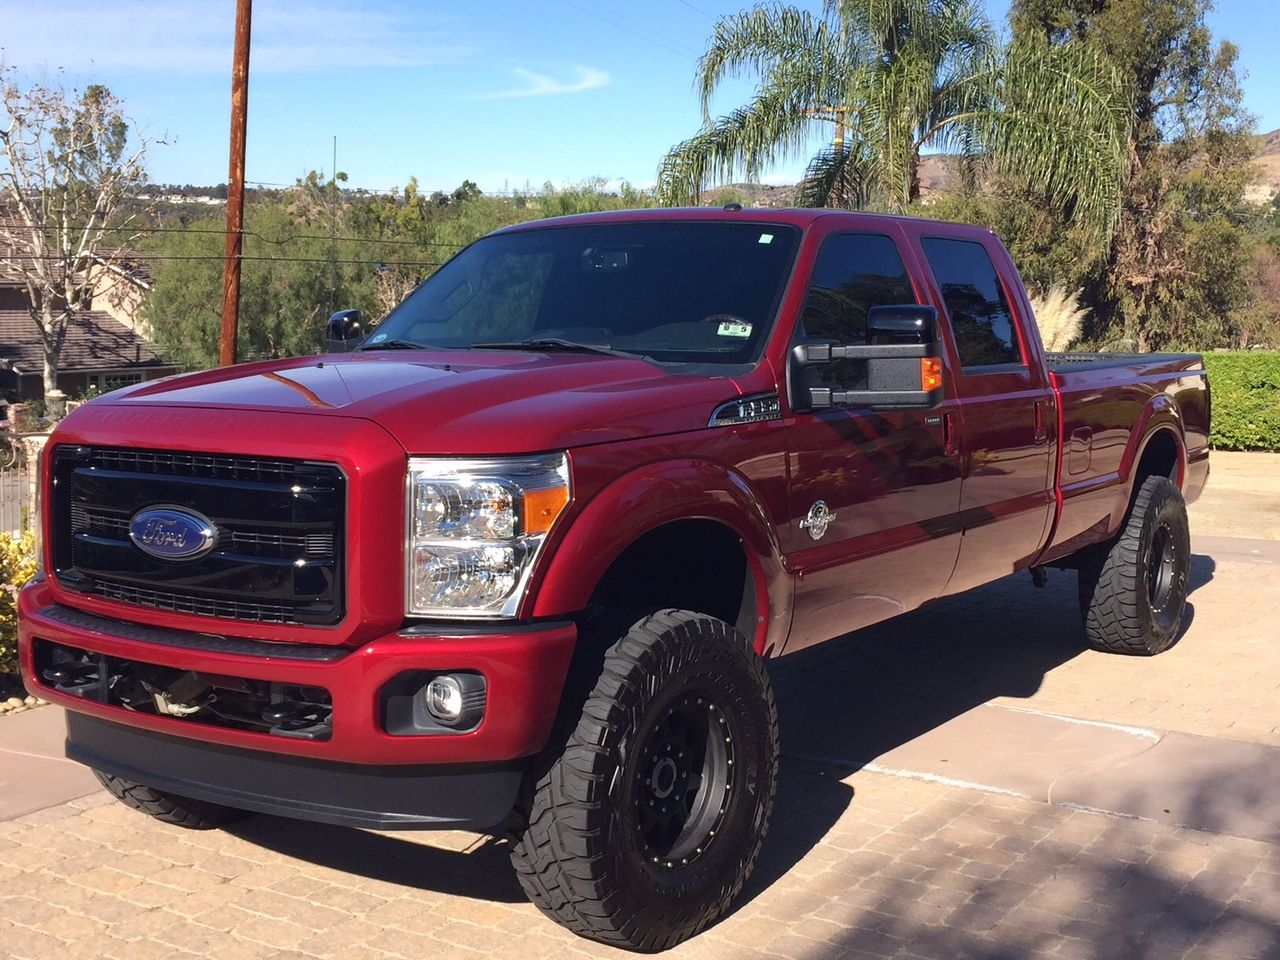 2014 ford f 350 super duty platinum lifted for sale. Black Bedroom Furniture Sets. Home Design Ideas